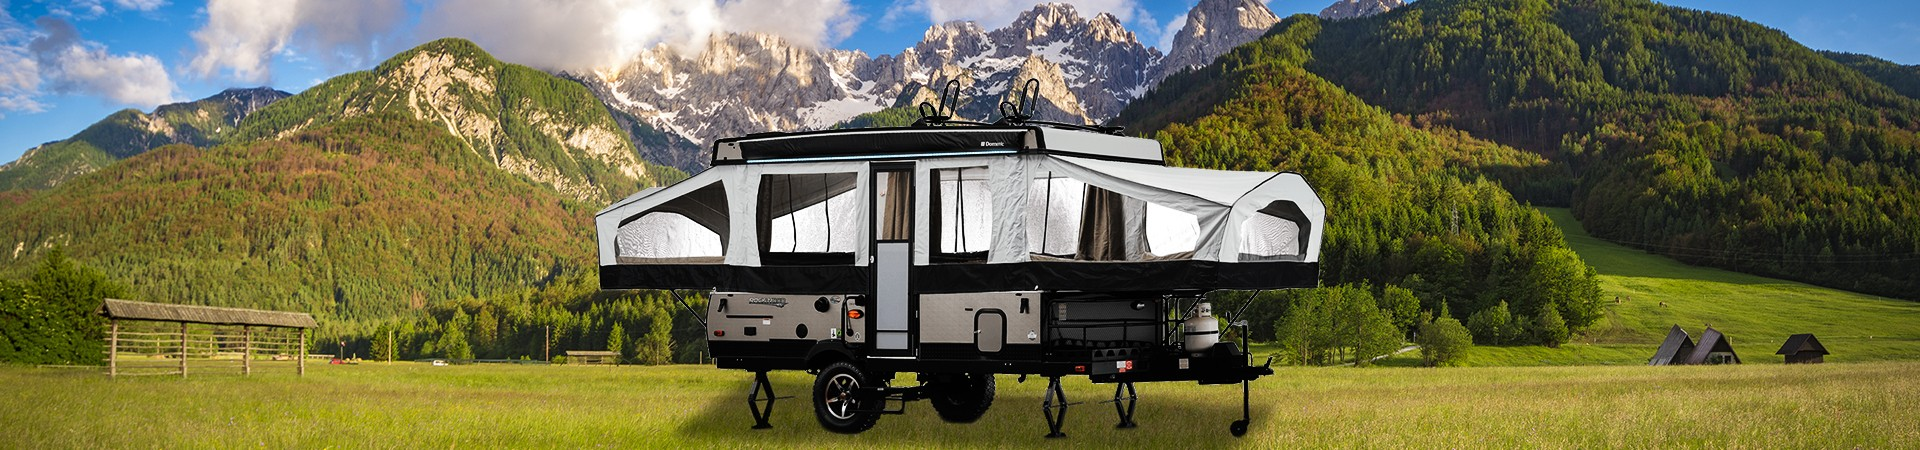 The Mountains Are Calling: The Best RVs For Mountain Life